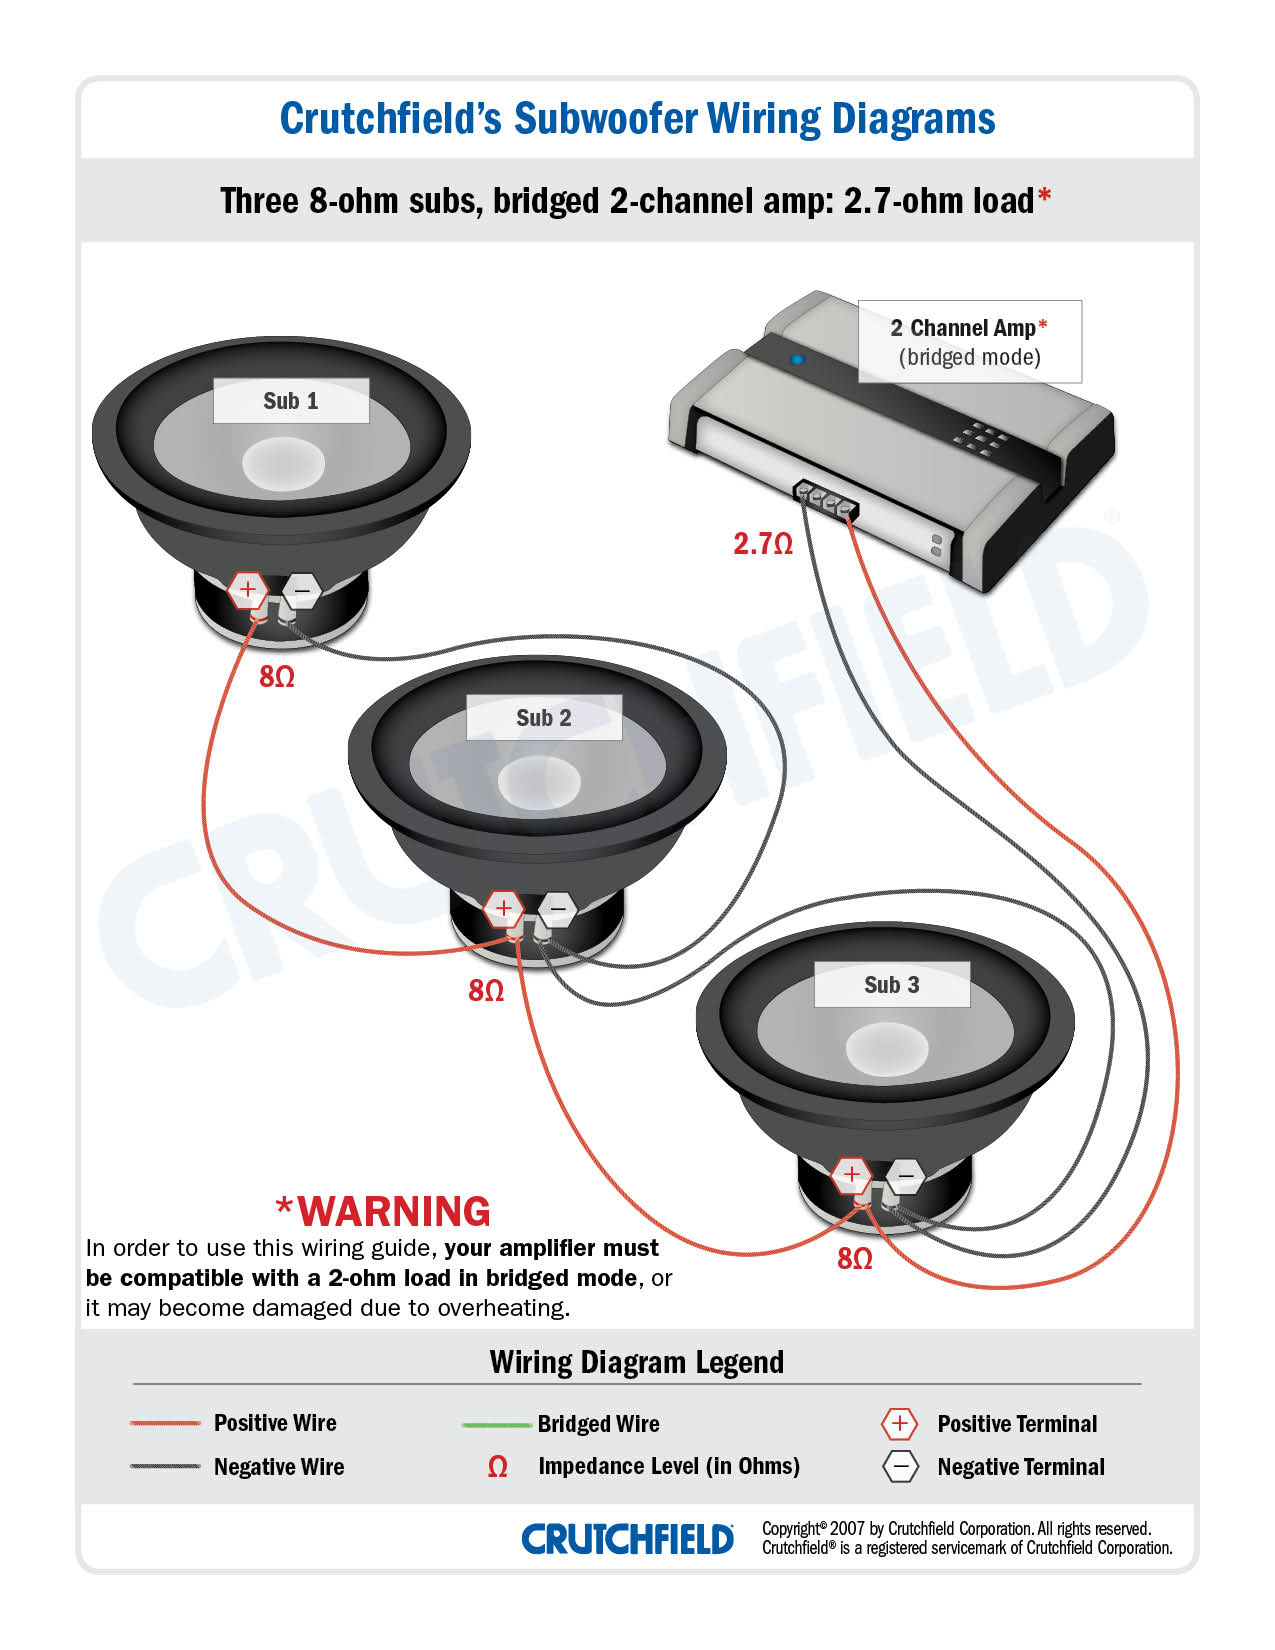 3 SVC 8 ohm 2 ch low imp 8 ohm wiring diagram subwoofer ohm diagram \u2022 free wiring diagrams 4 ohm speaker wiring diagram at creativeand.co